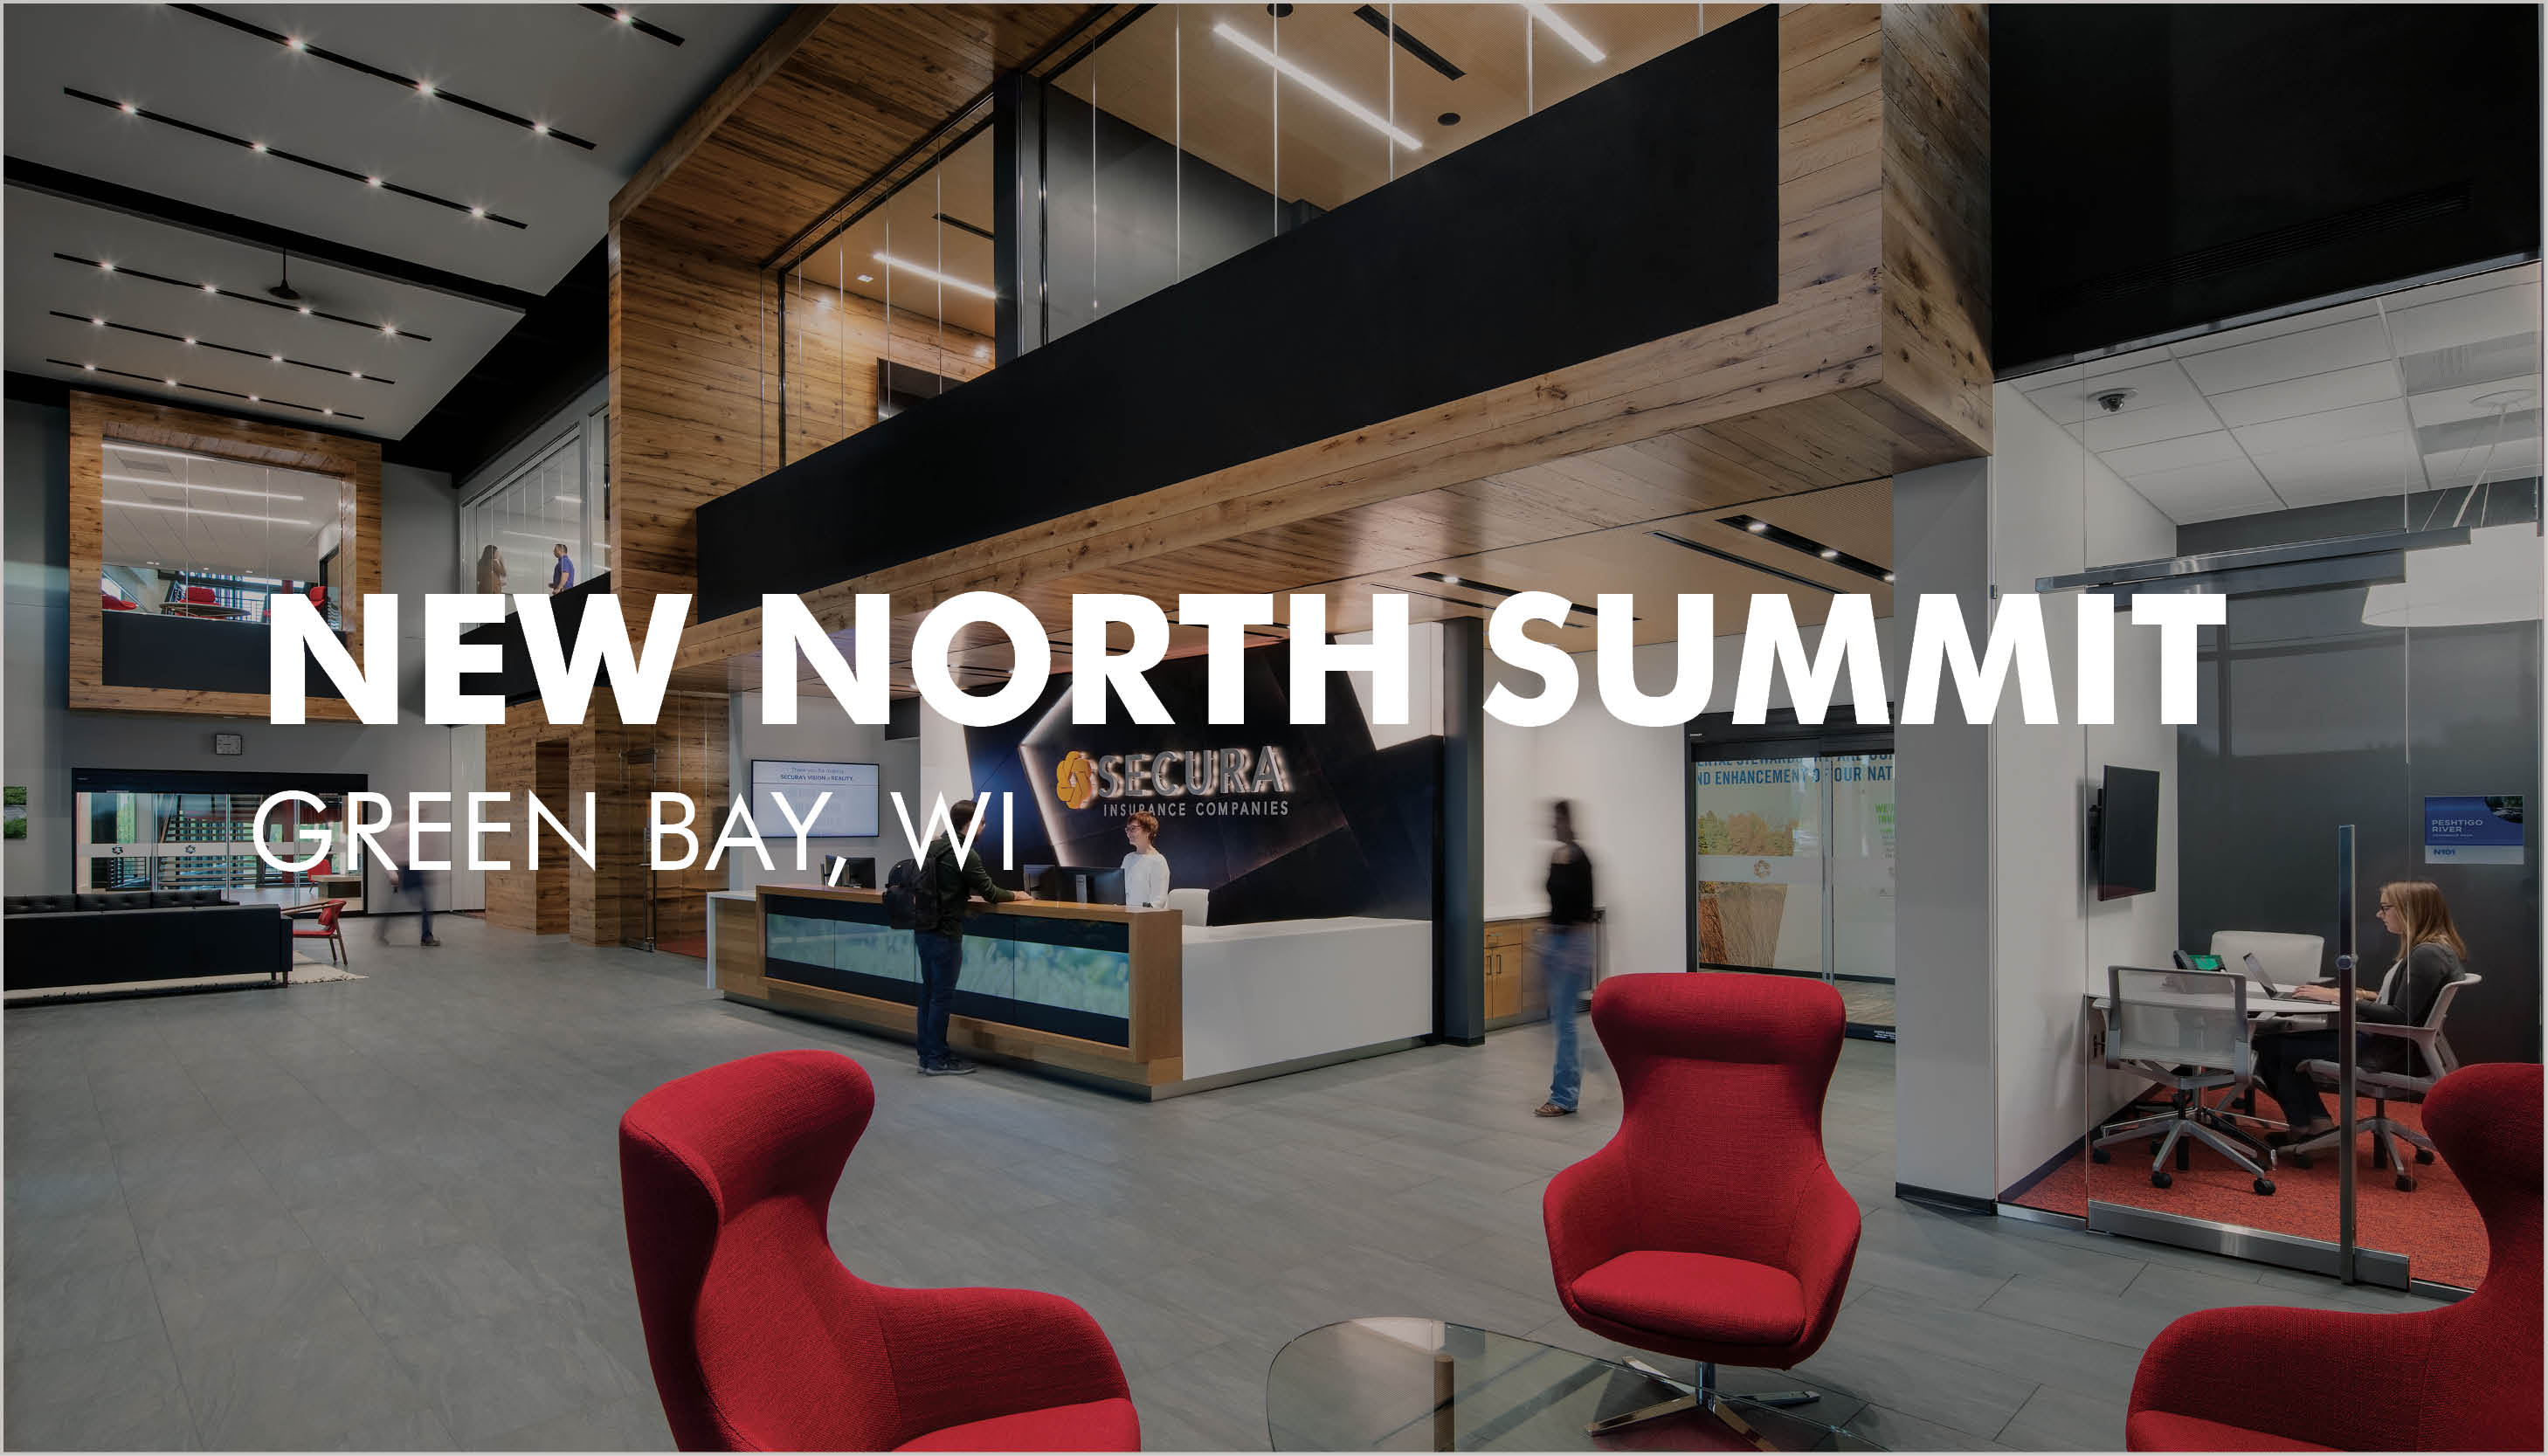 New North Summit 2019 Annual Conference Image